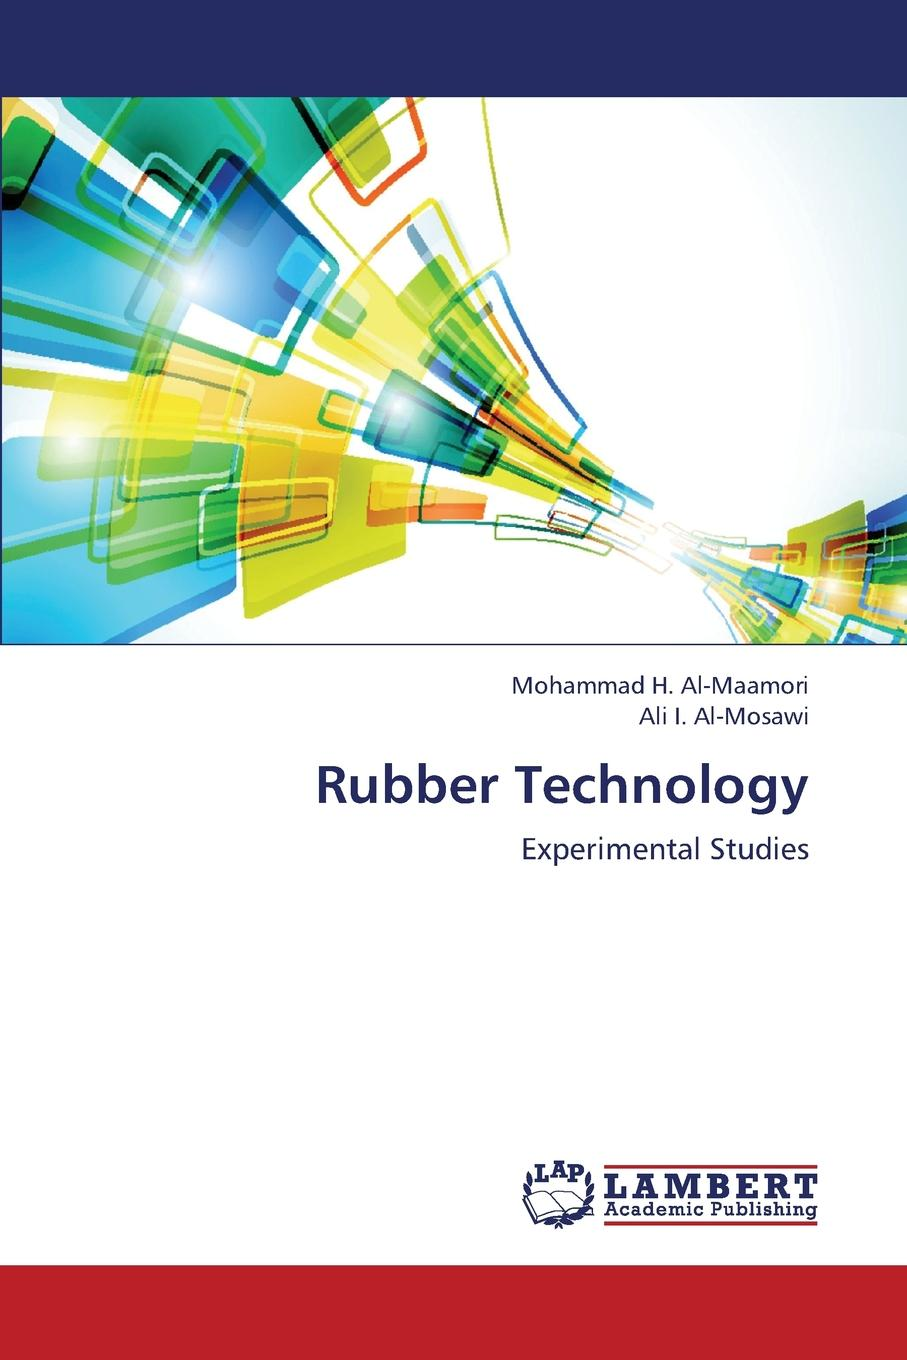 H. Al-Maamori Mohammad, I. Al-Mosawi Ali Rubber Technology charles edmond akers the rubber industry in brazil and the orient